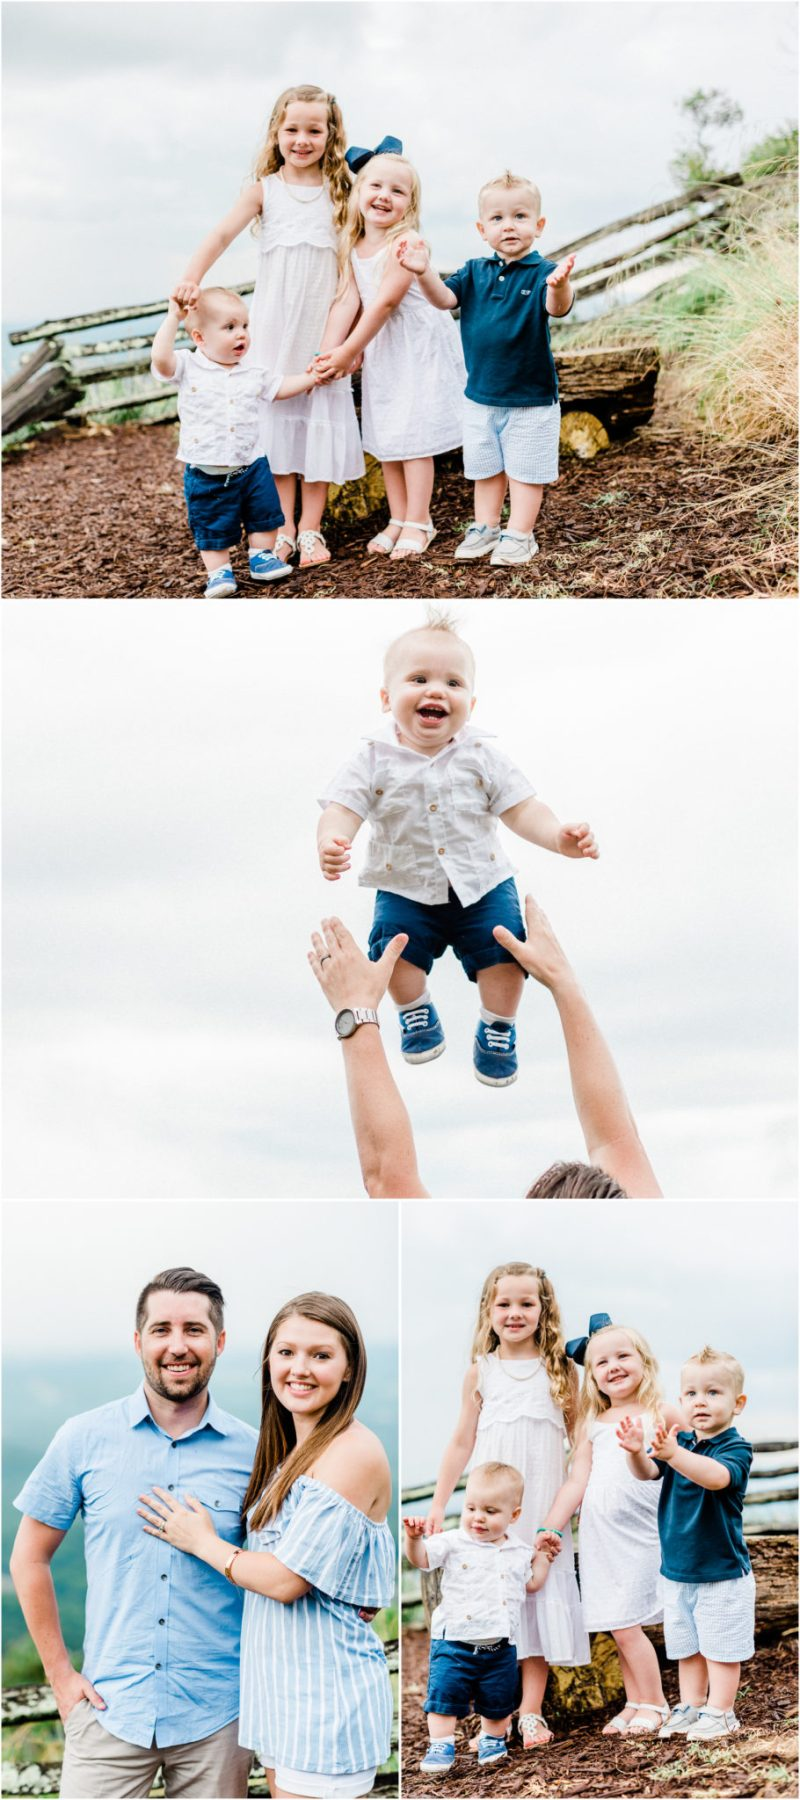 Glassy Chapel Family Session at the Cliffs in Landrum